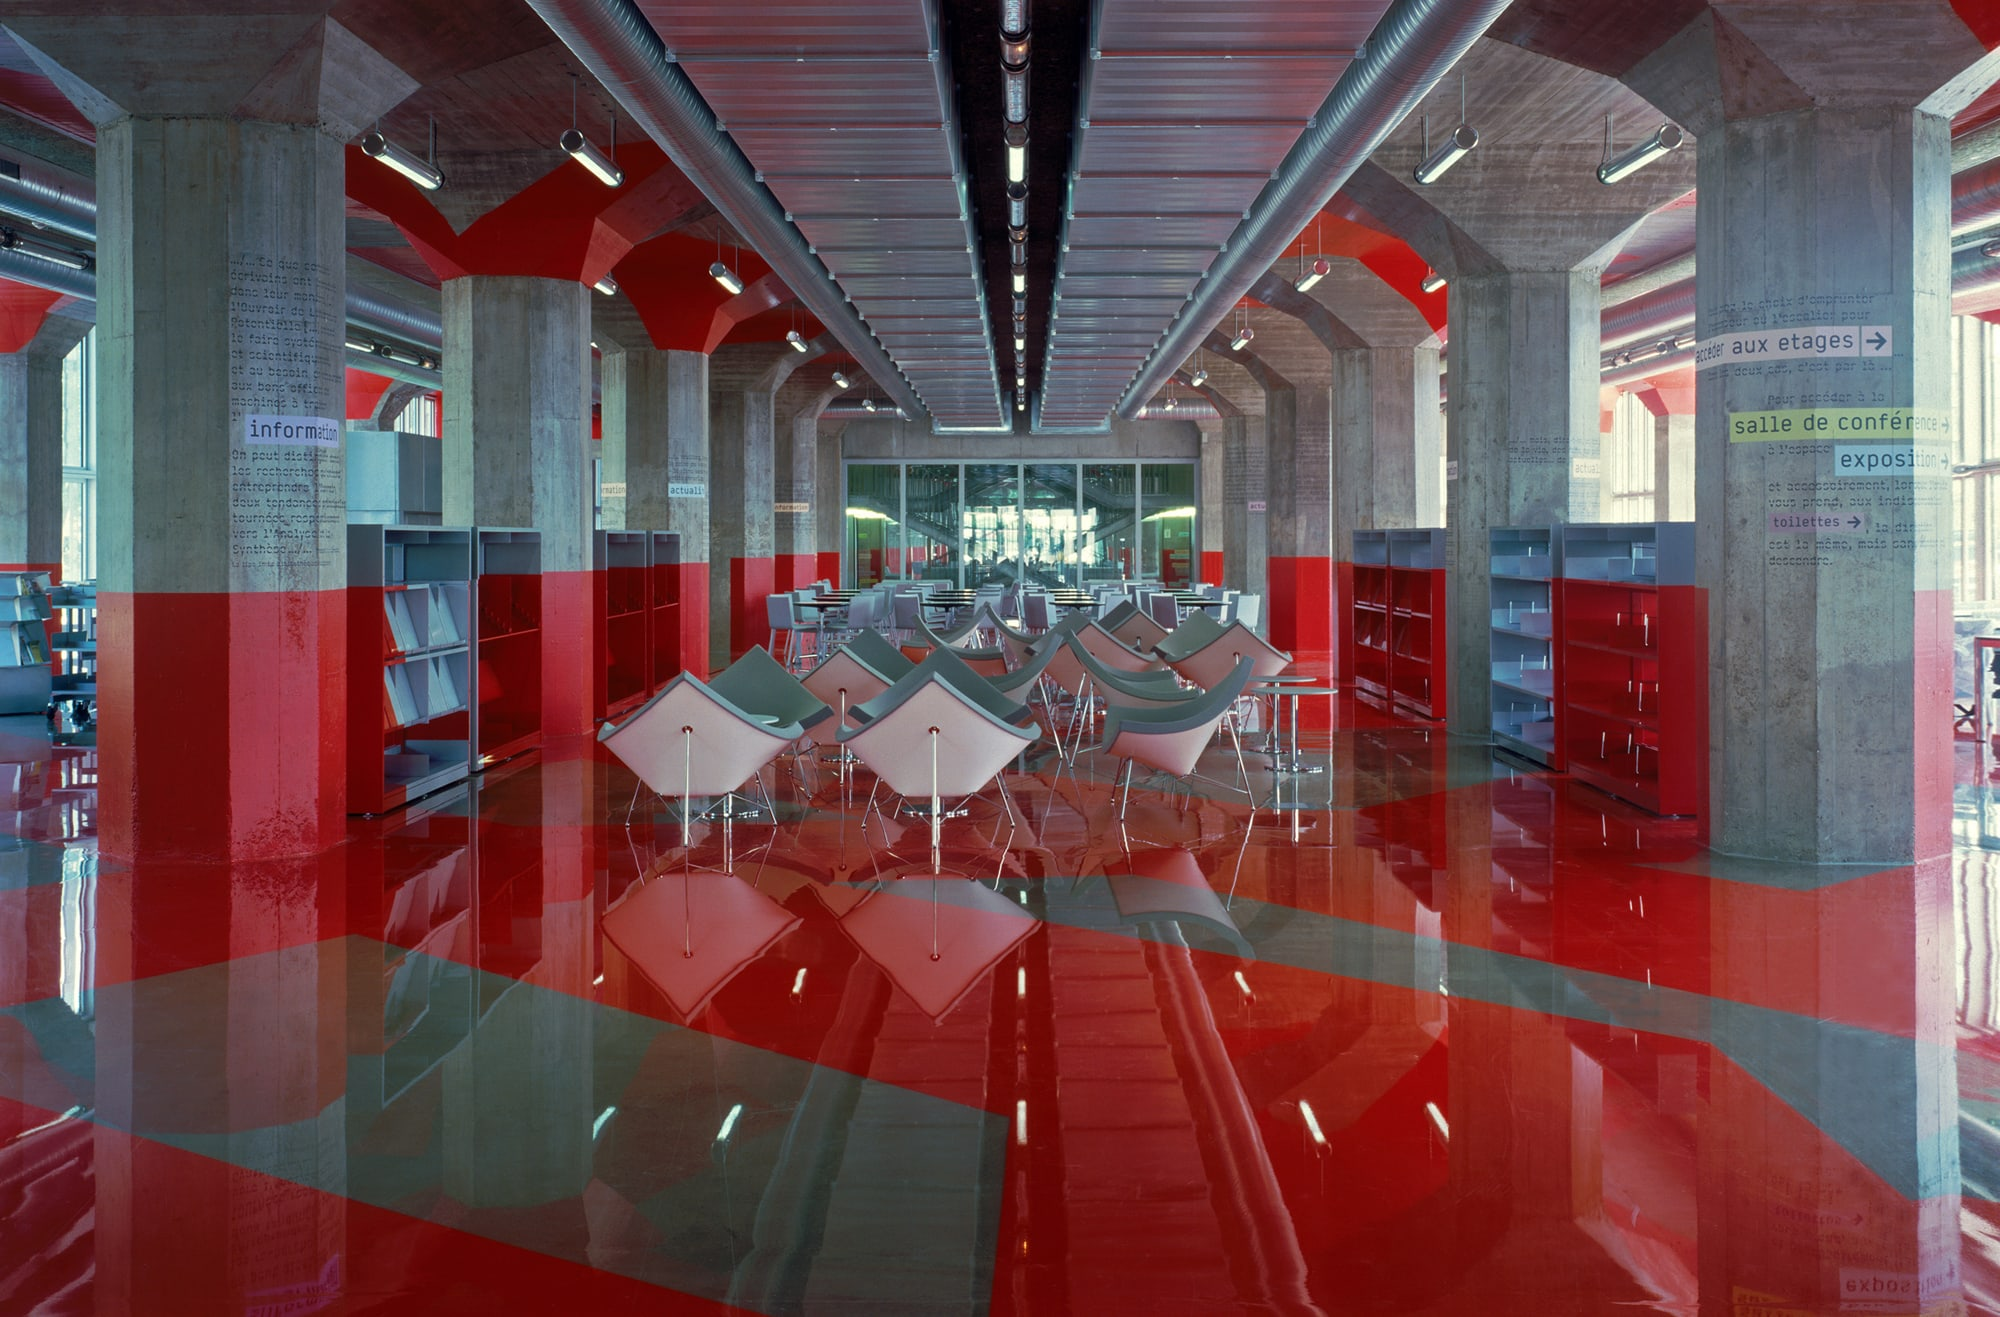 Ibos Vitart 183 Andre Malraux Library 183 Divisare